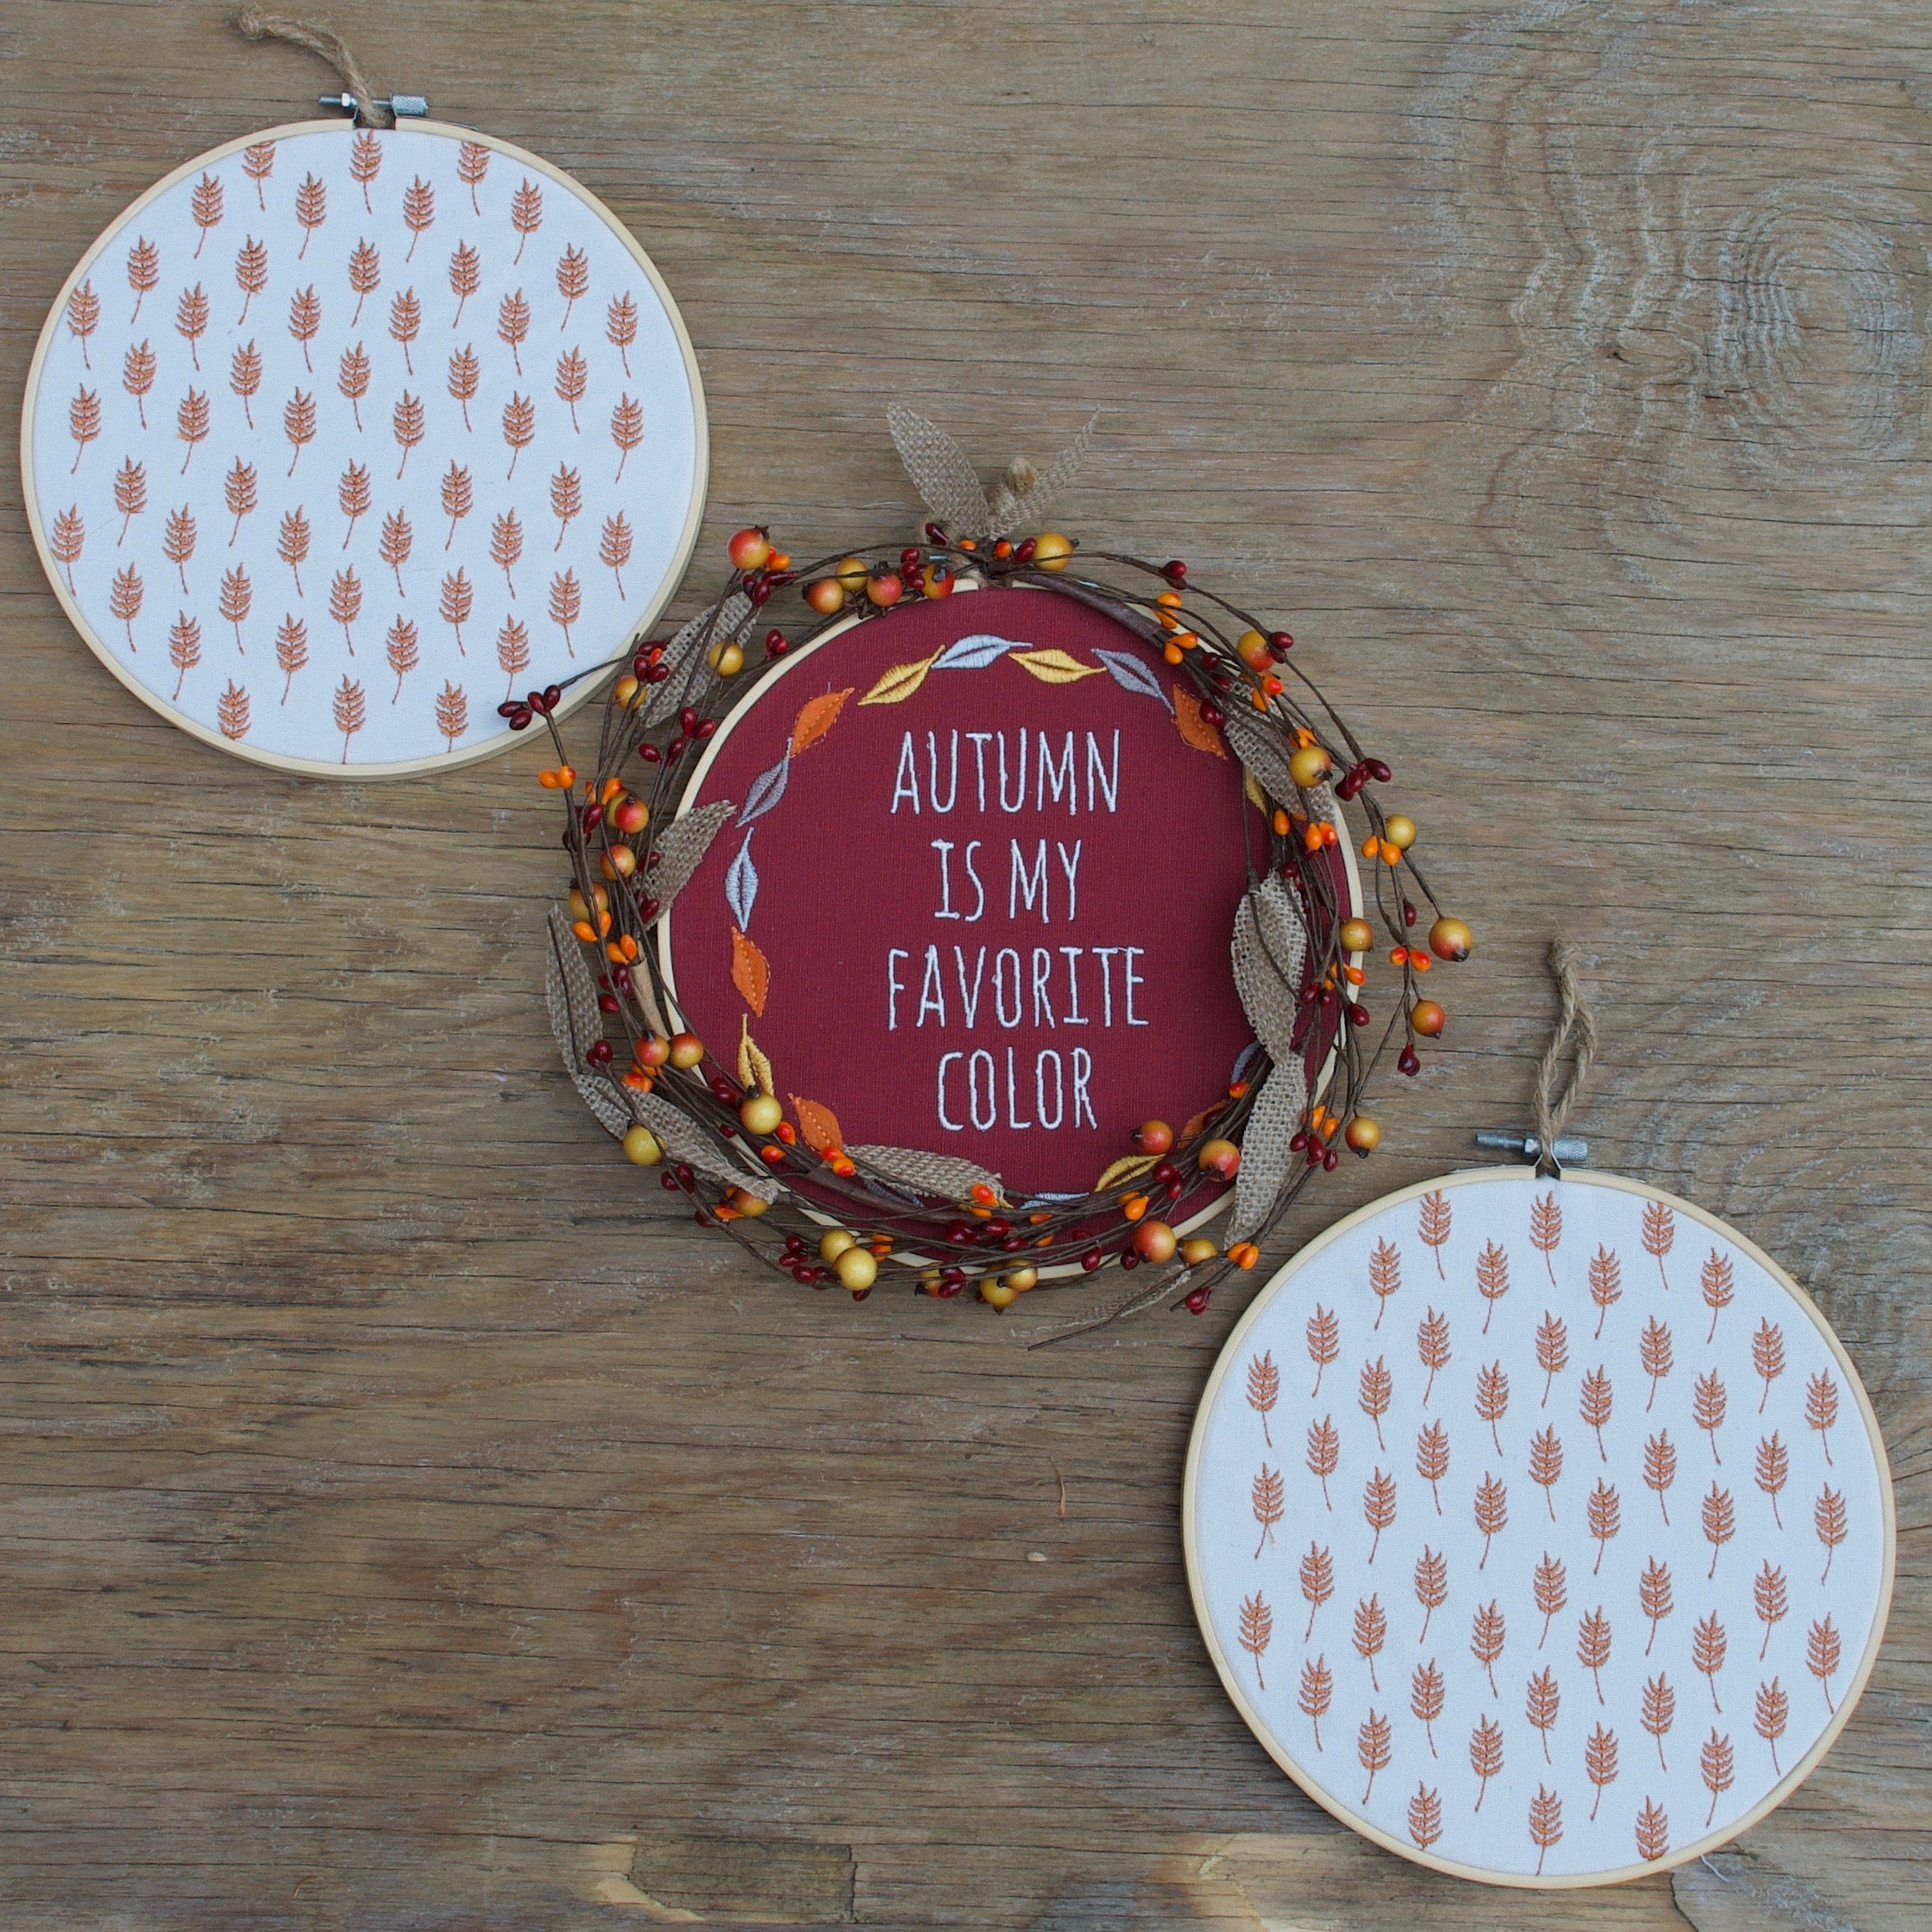 Custom Autumn Hoop Wreath - Autumn is my Favorite Color